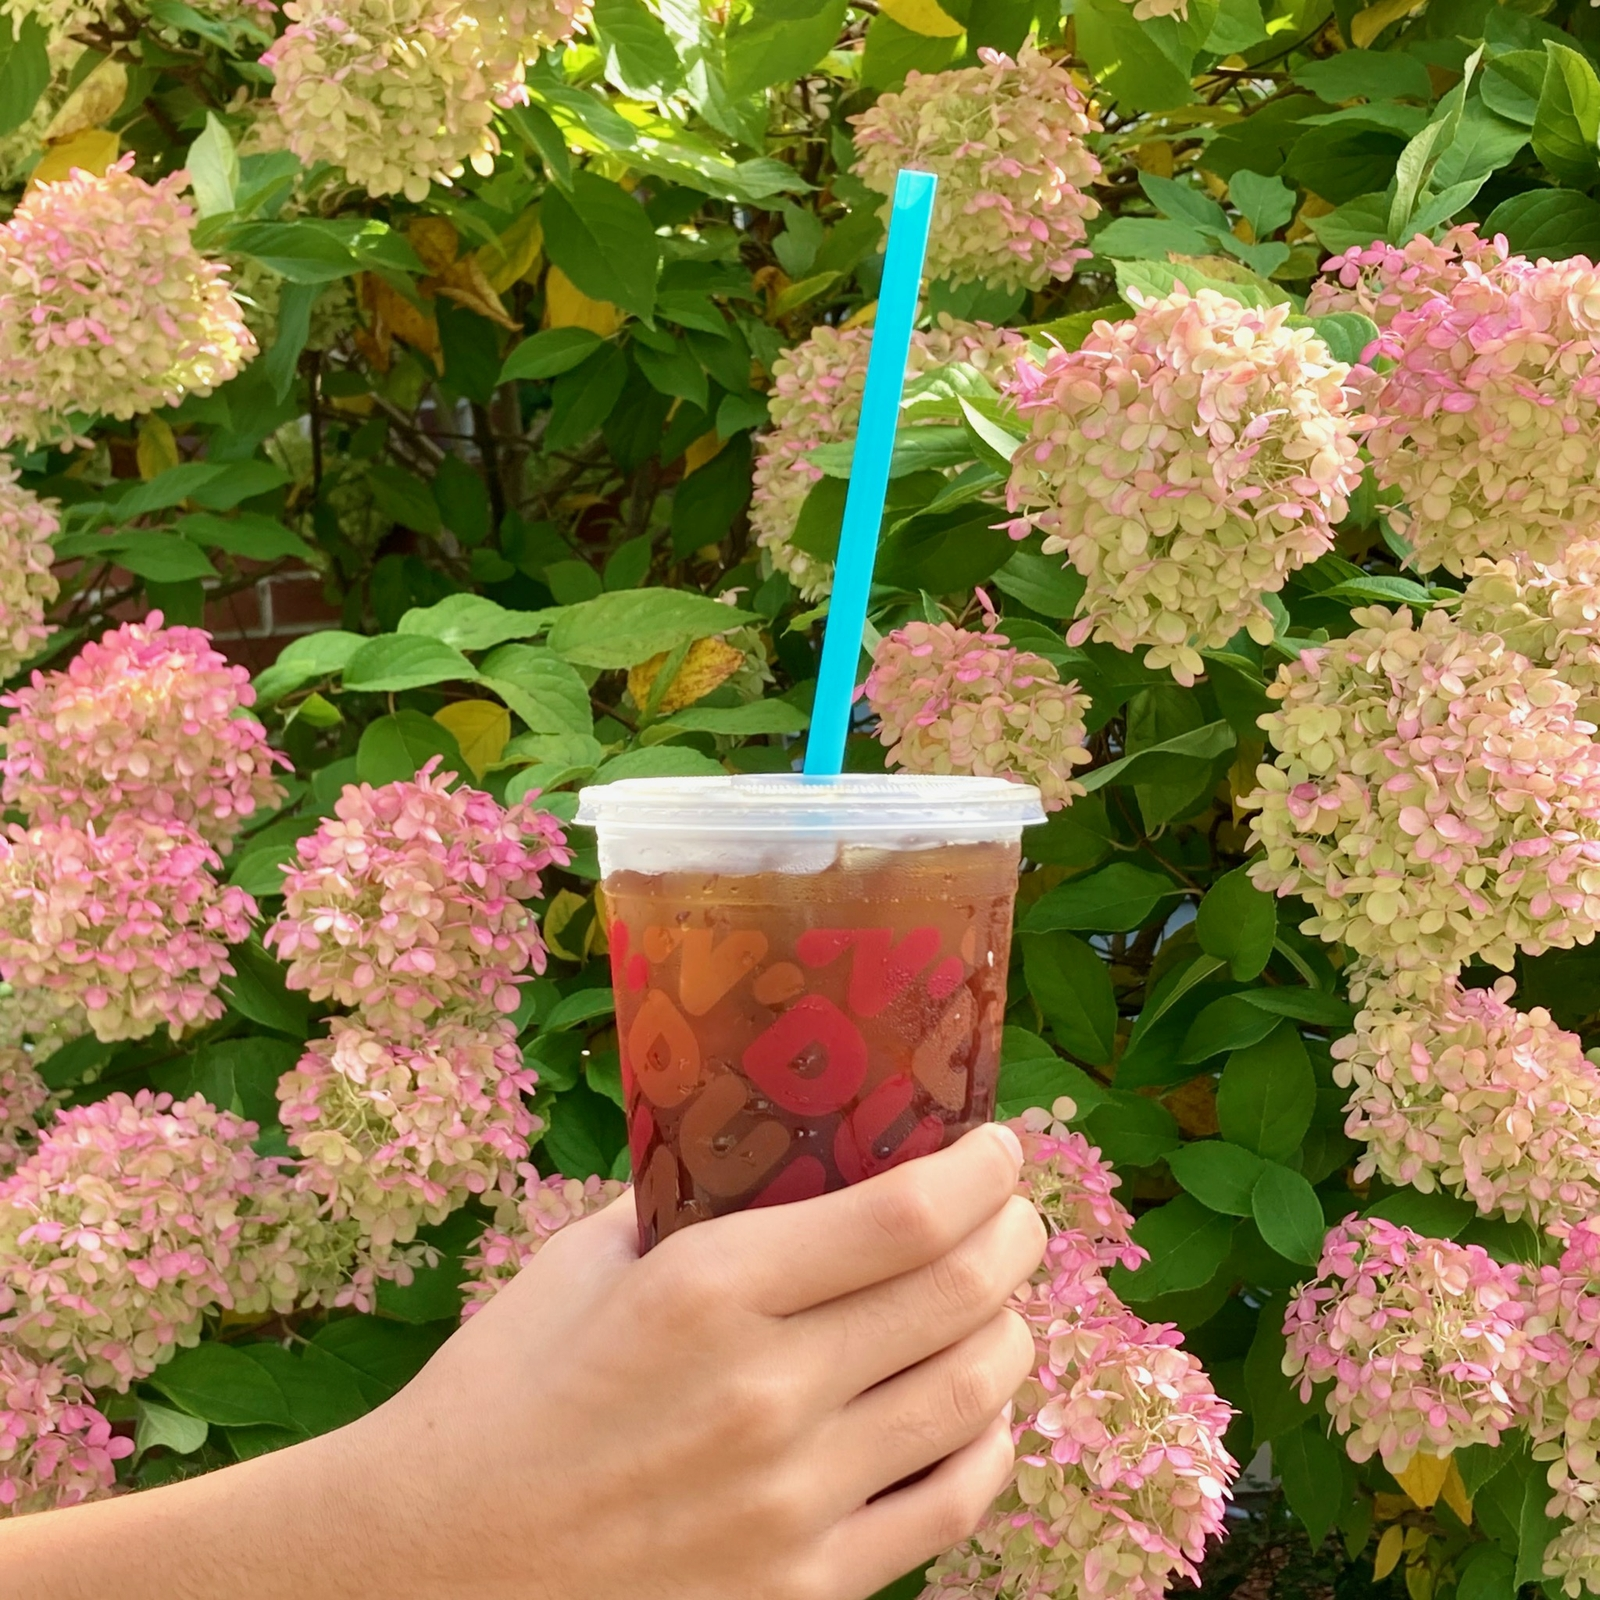 Dunkin' Tests Biodegradable Straws at Select Stores Across the U.S.